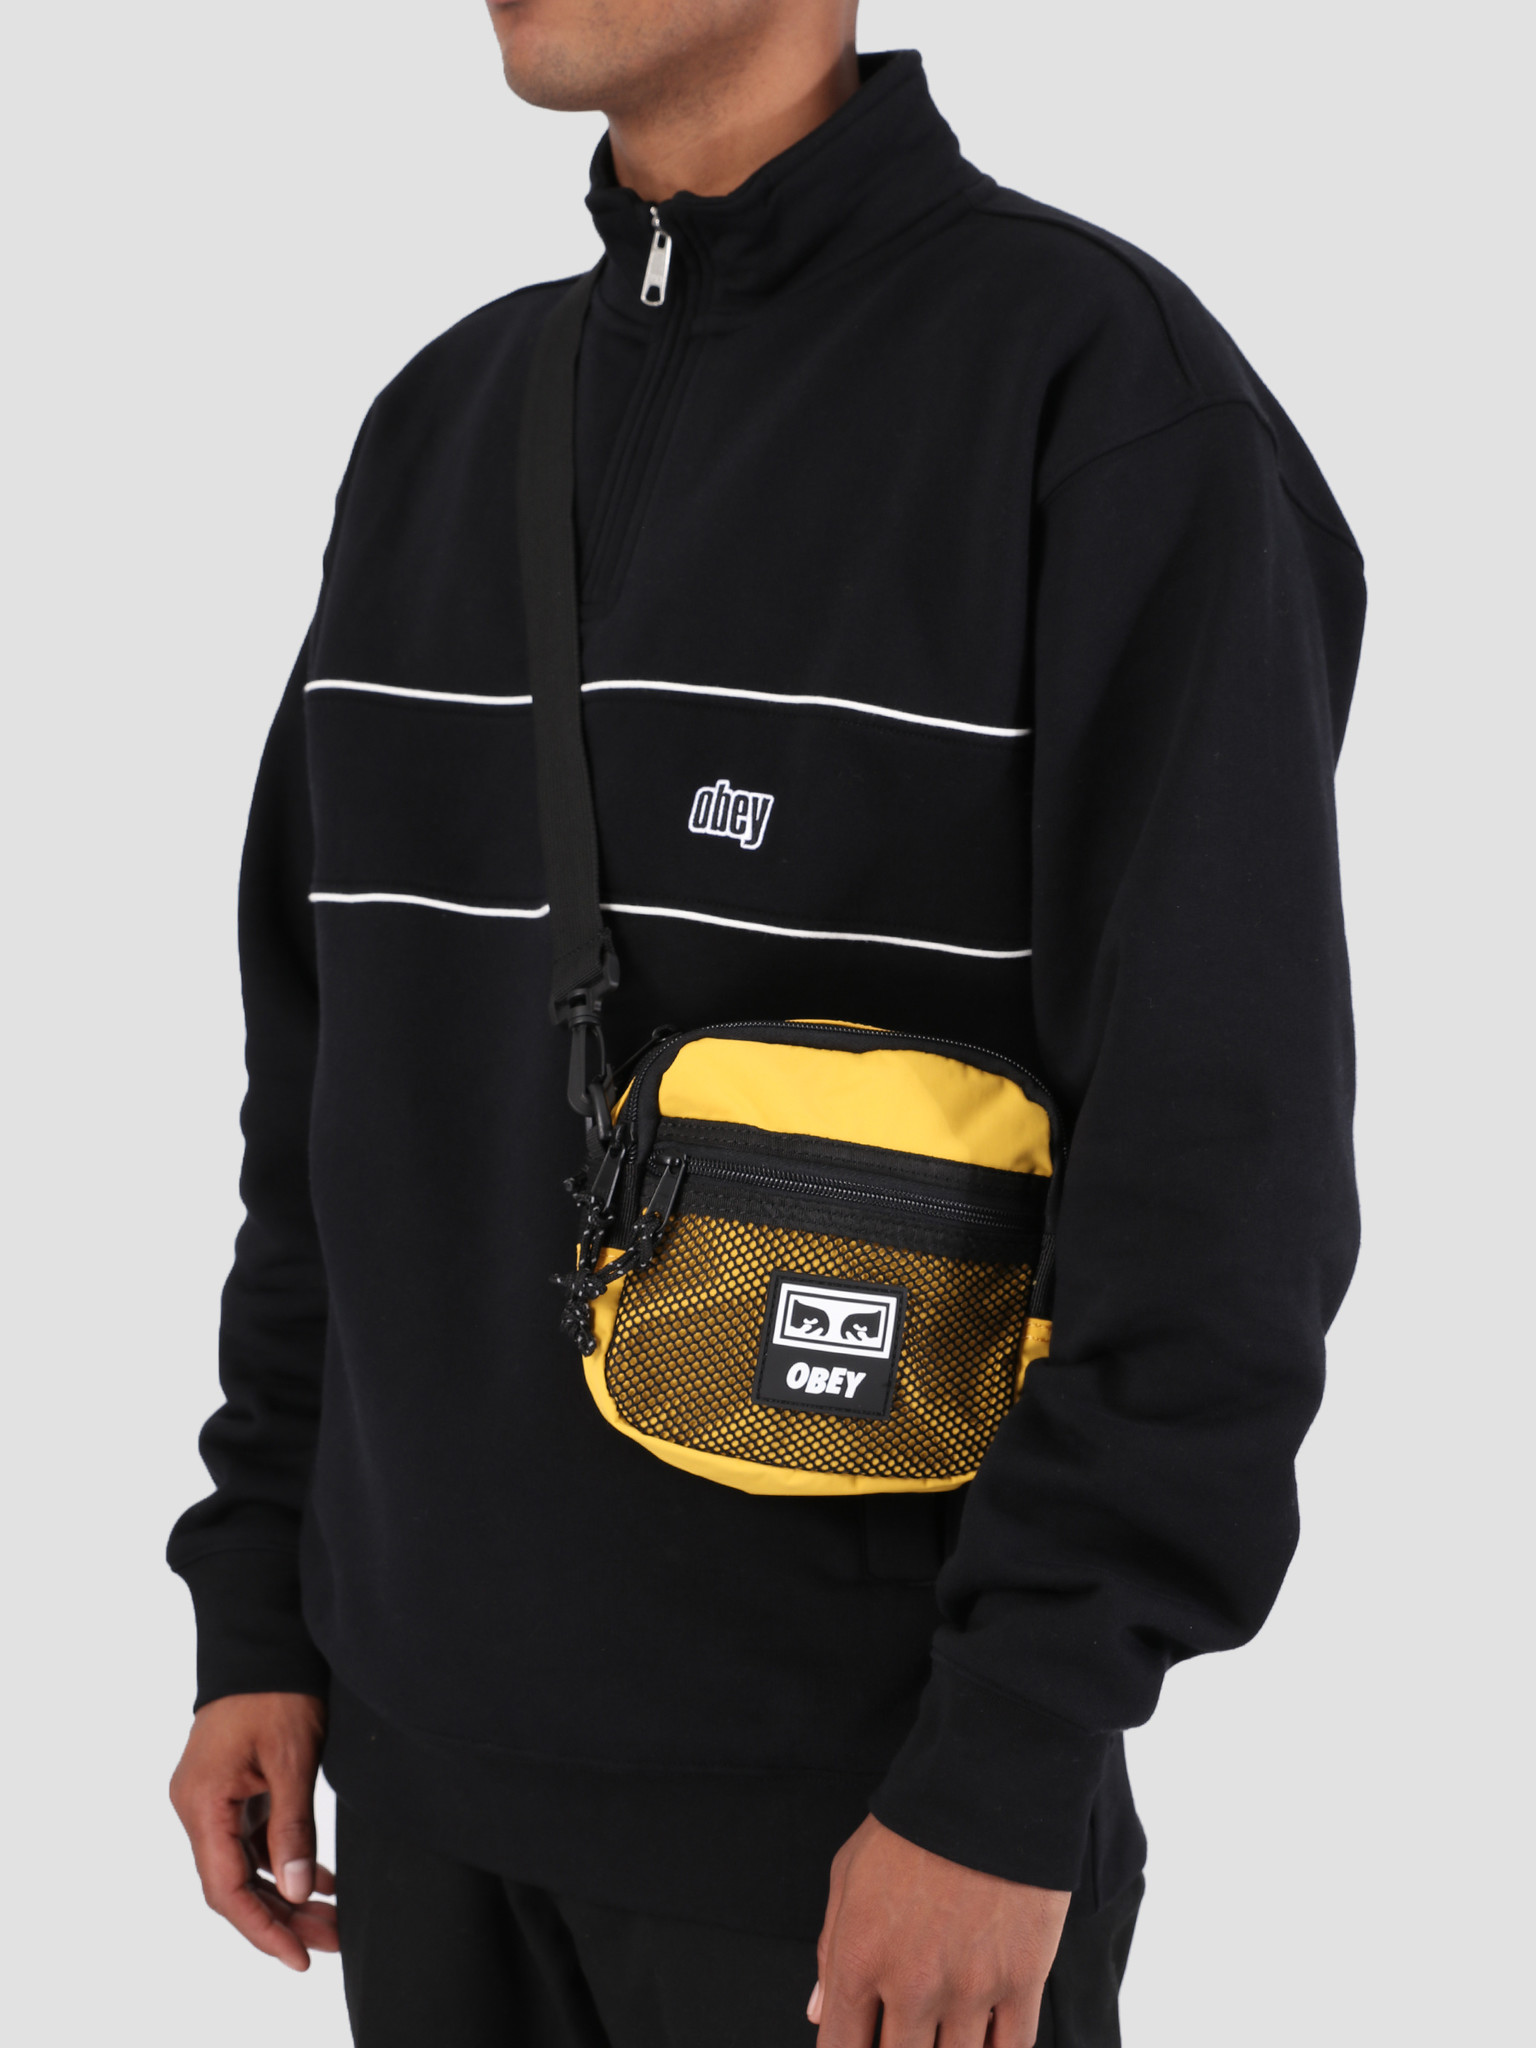 Obey Obey Conditions Traveler Bag YEL 100010109